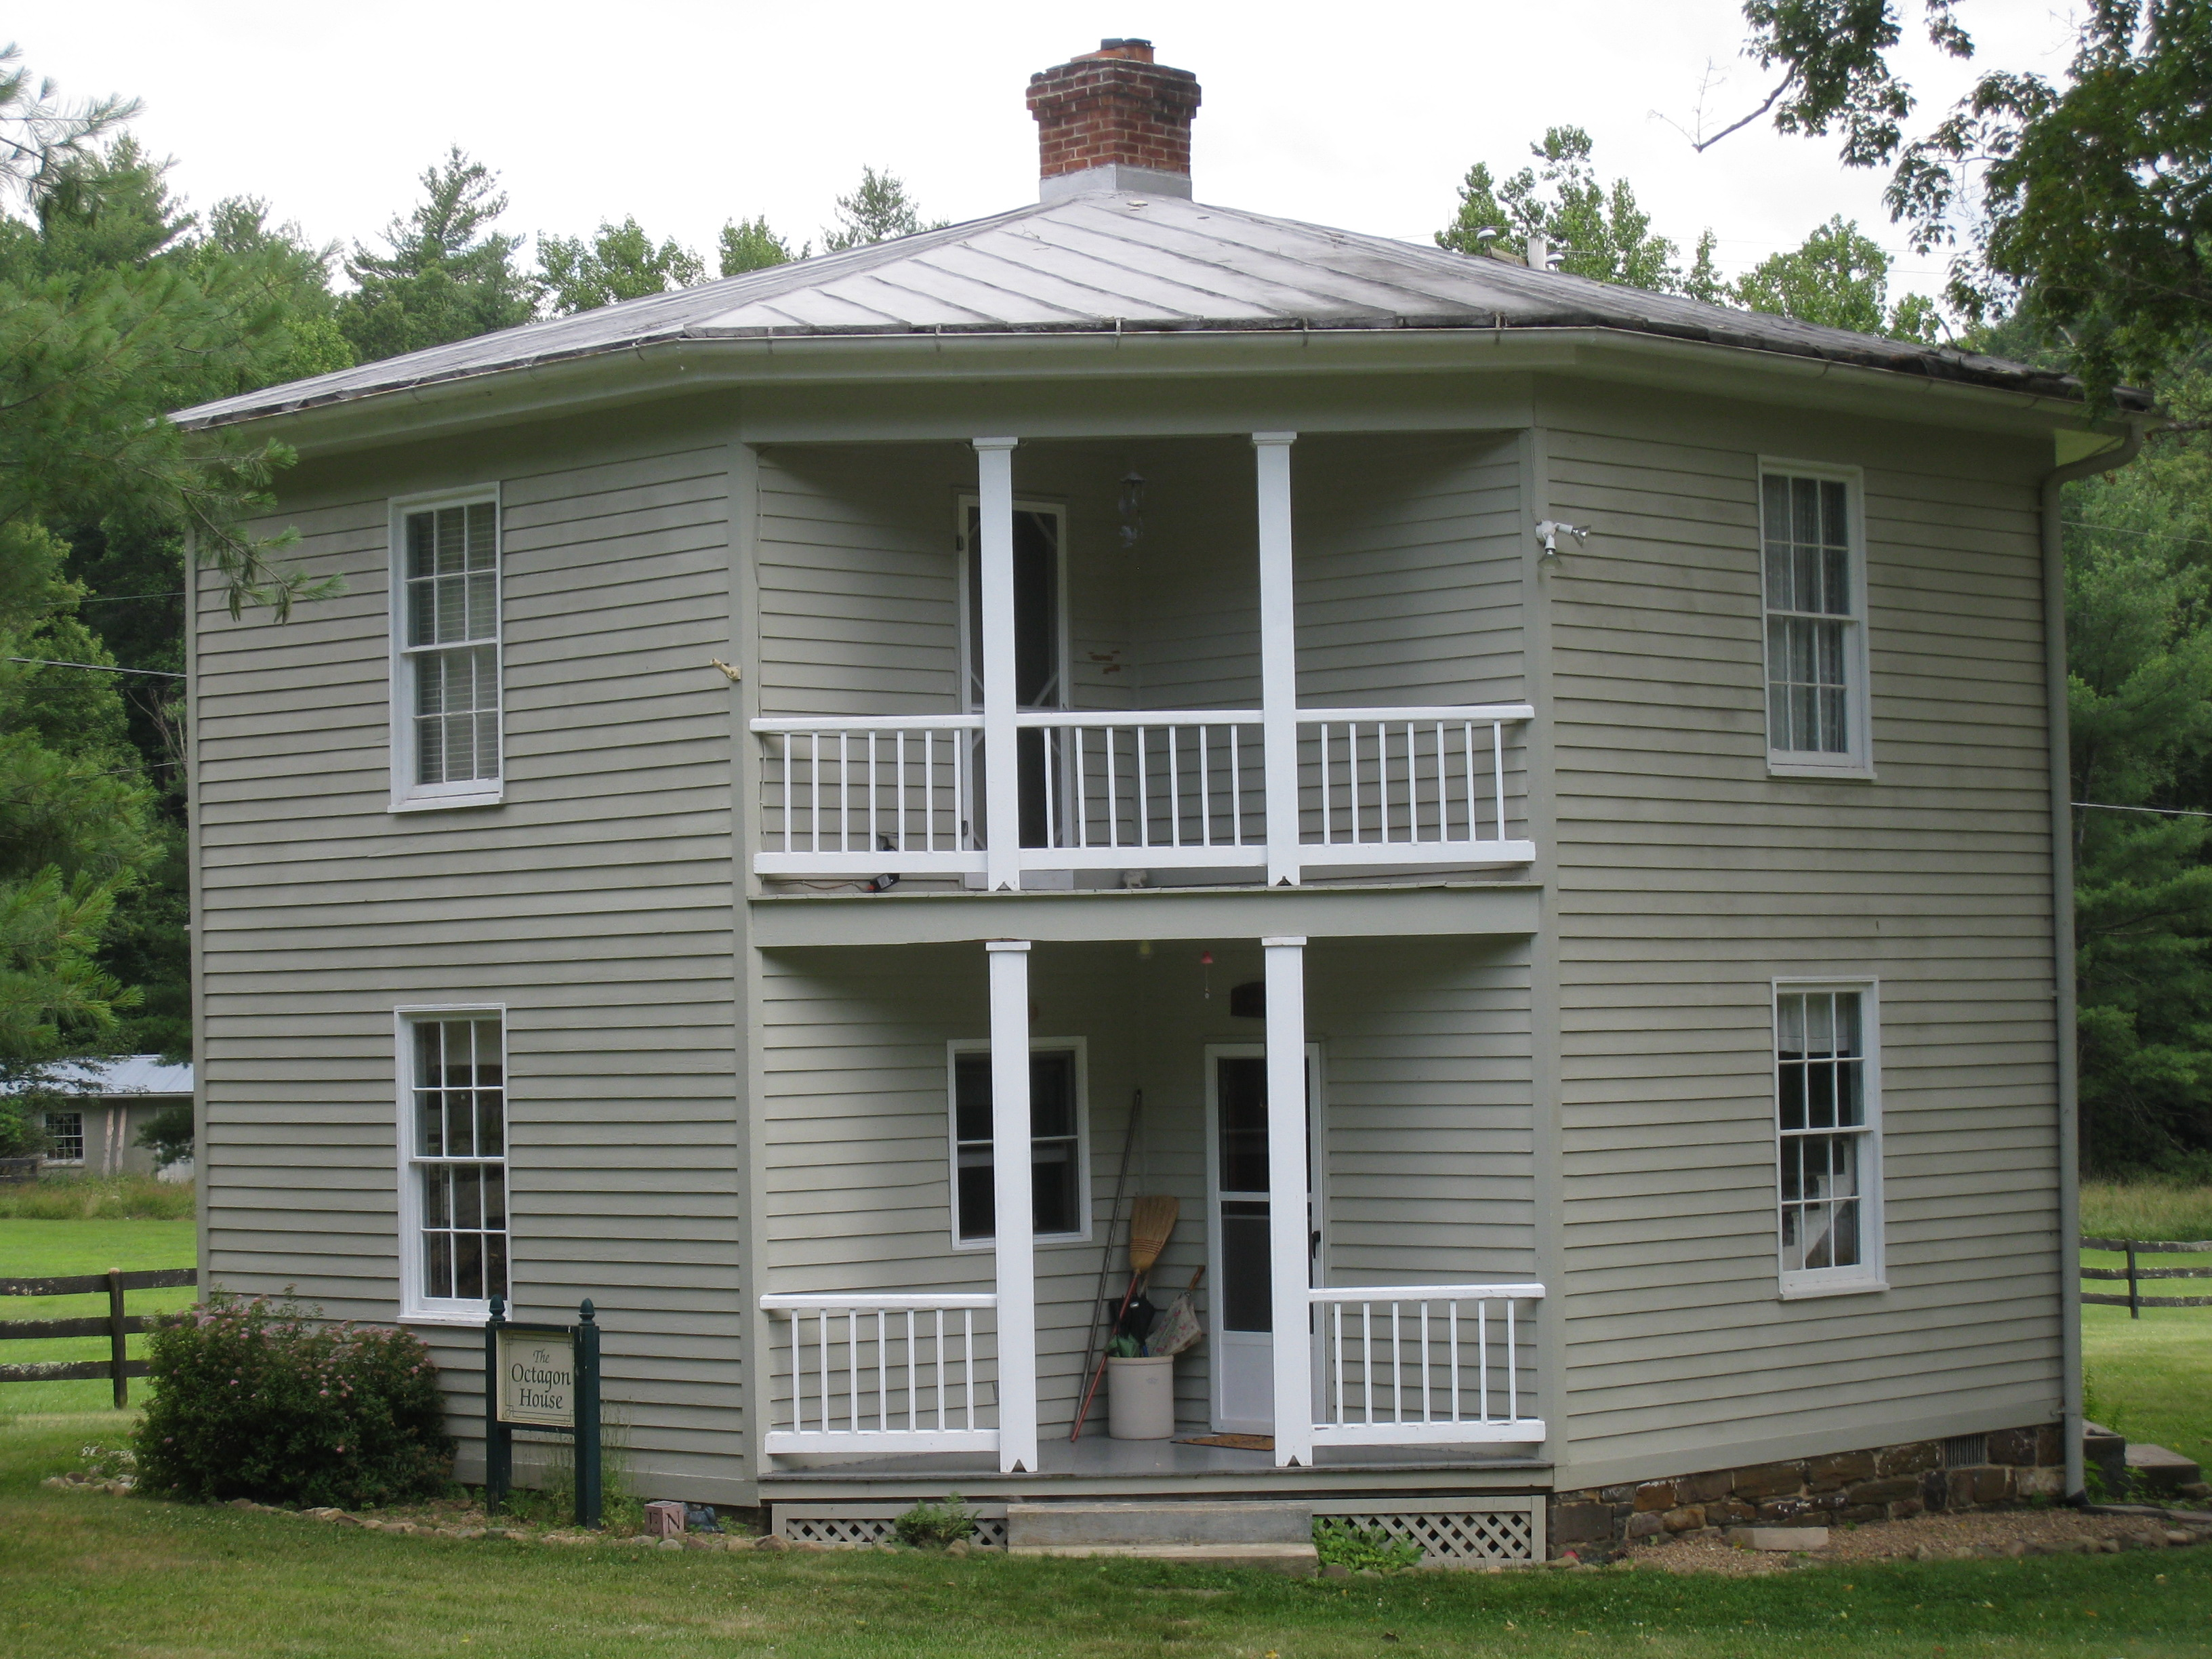 Octagon houses in West Virginia